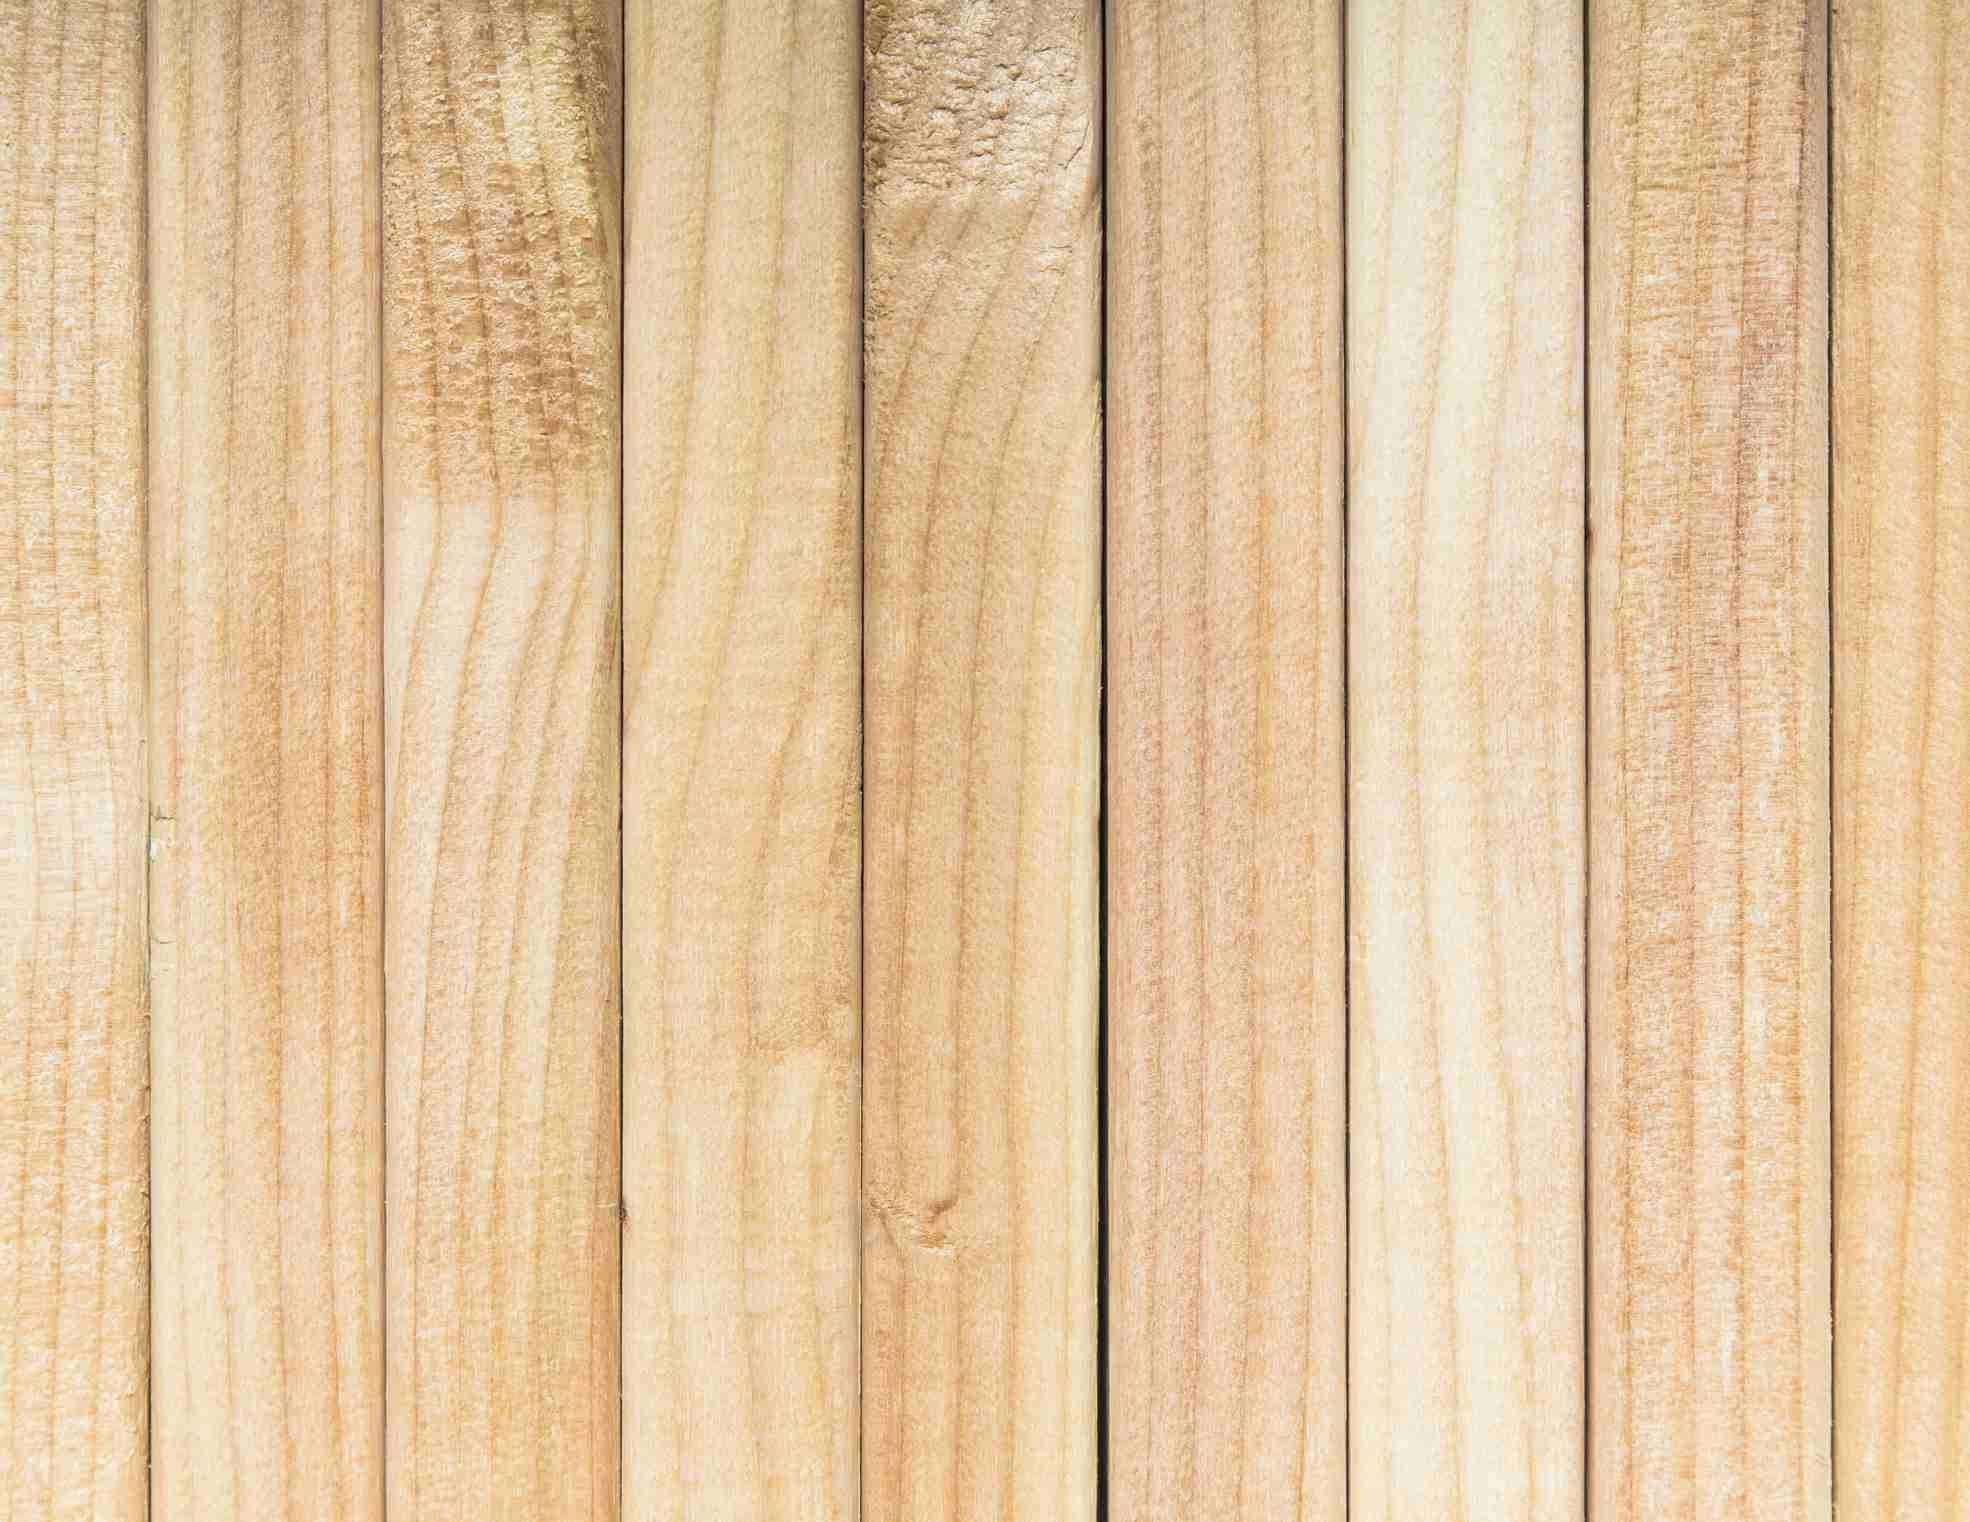 how much does hardwood flooring cost canada of standing timber prices for loggers for gettyimages 159395853 57824f815f9b5831b575e3ea